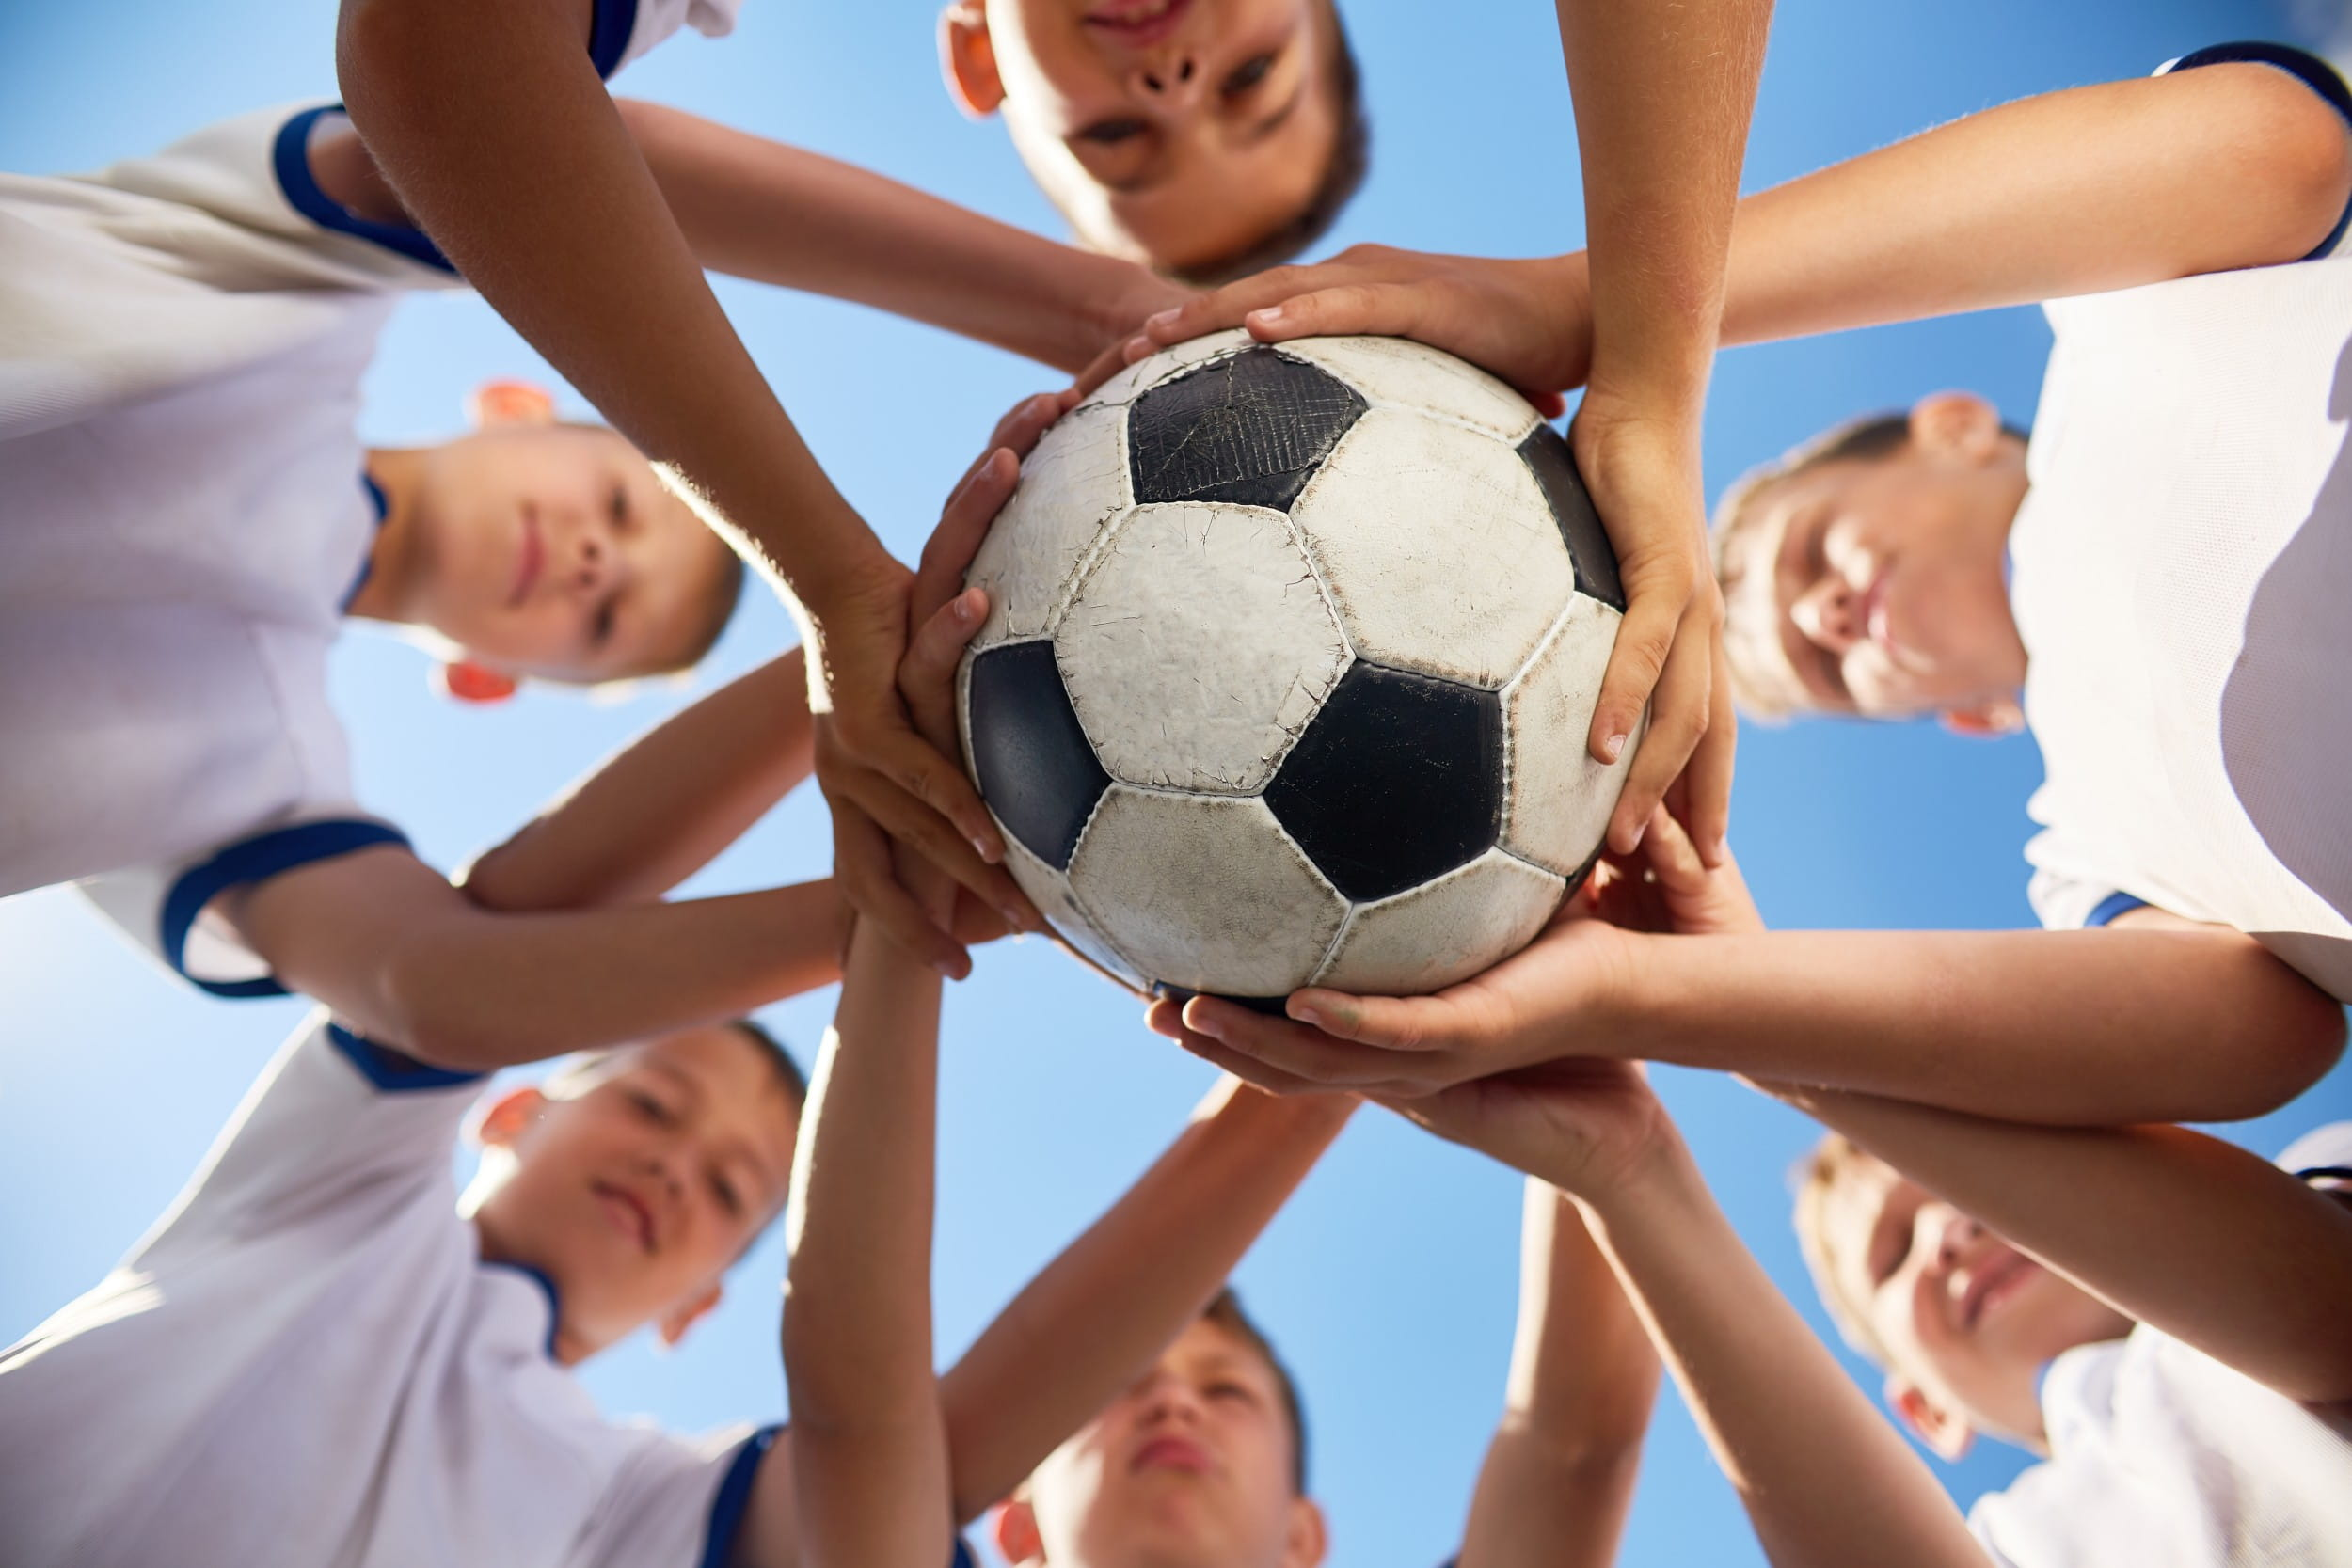 Low angle view of boys in junior football team standing in circle holding ball together against blue sky, focus on ball ((c) Seventyfour – stock.adobe.com)